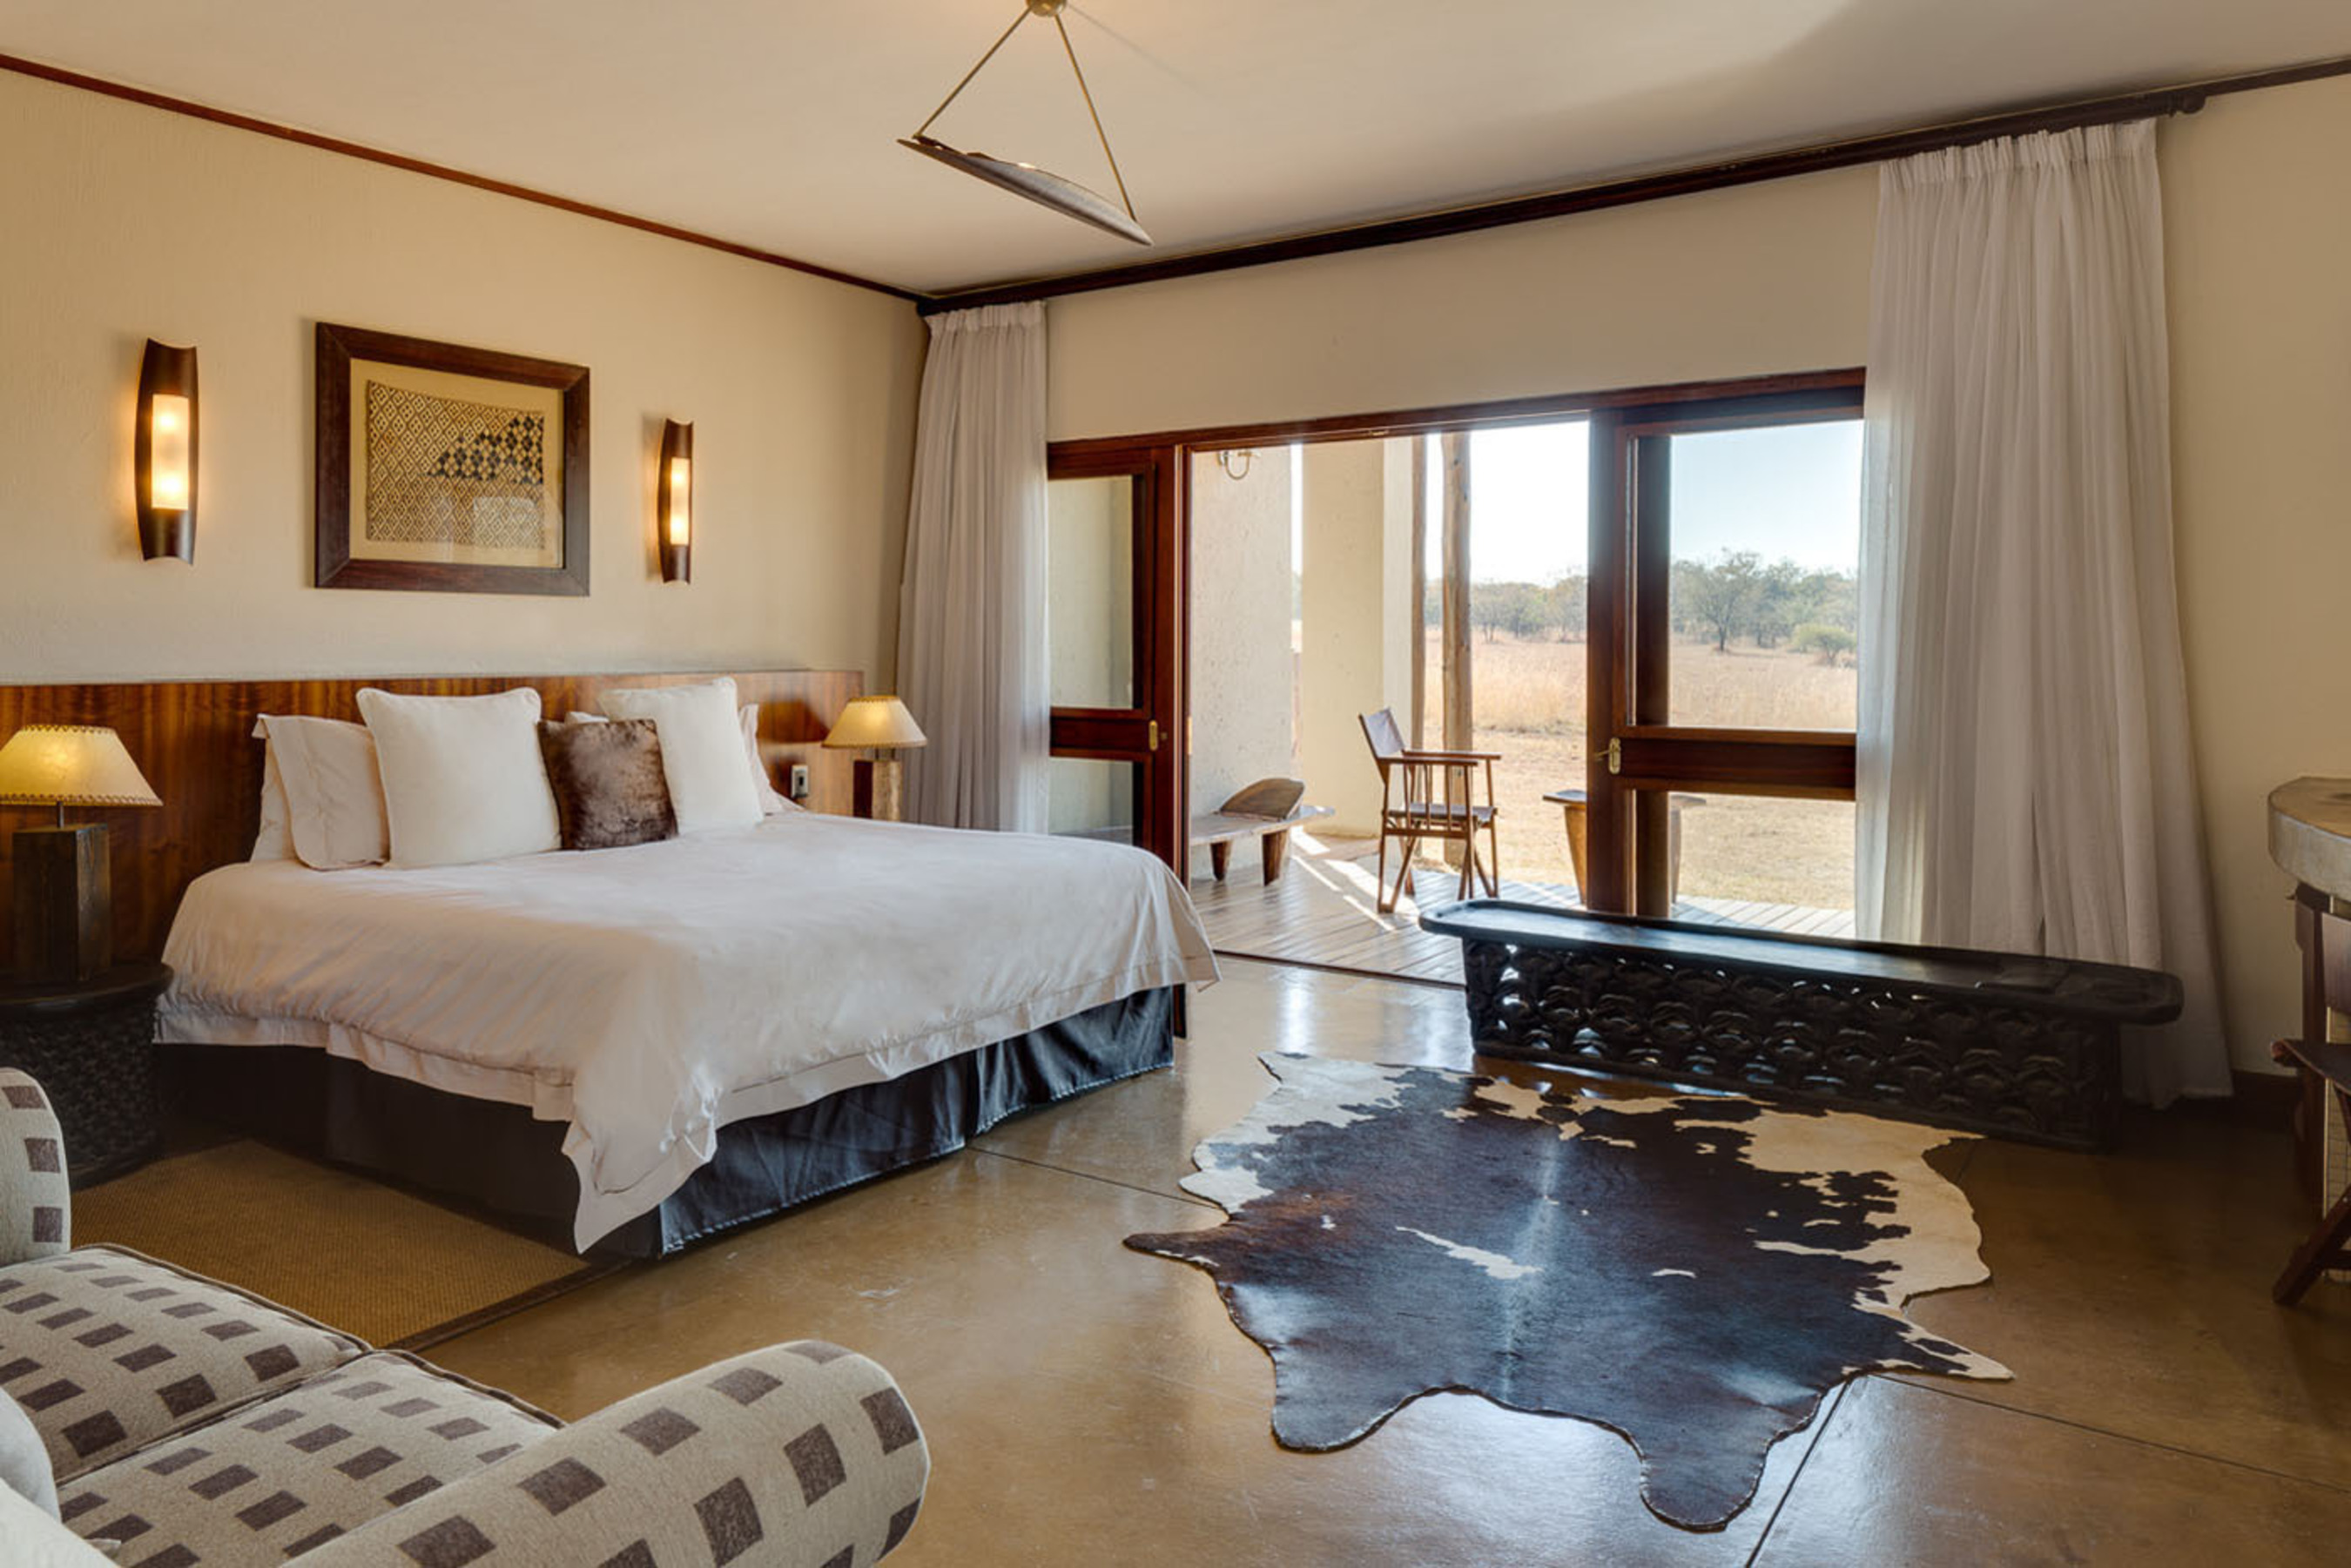 Marriott signs letter of intent to acquire Protea Hotel Group's Hotel Operations and Brands; Company expects to become largest hotel company in Africa.  (PRNewsFoto/Marriott International, Inc.)